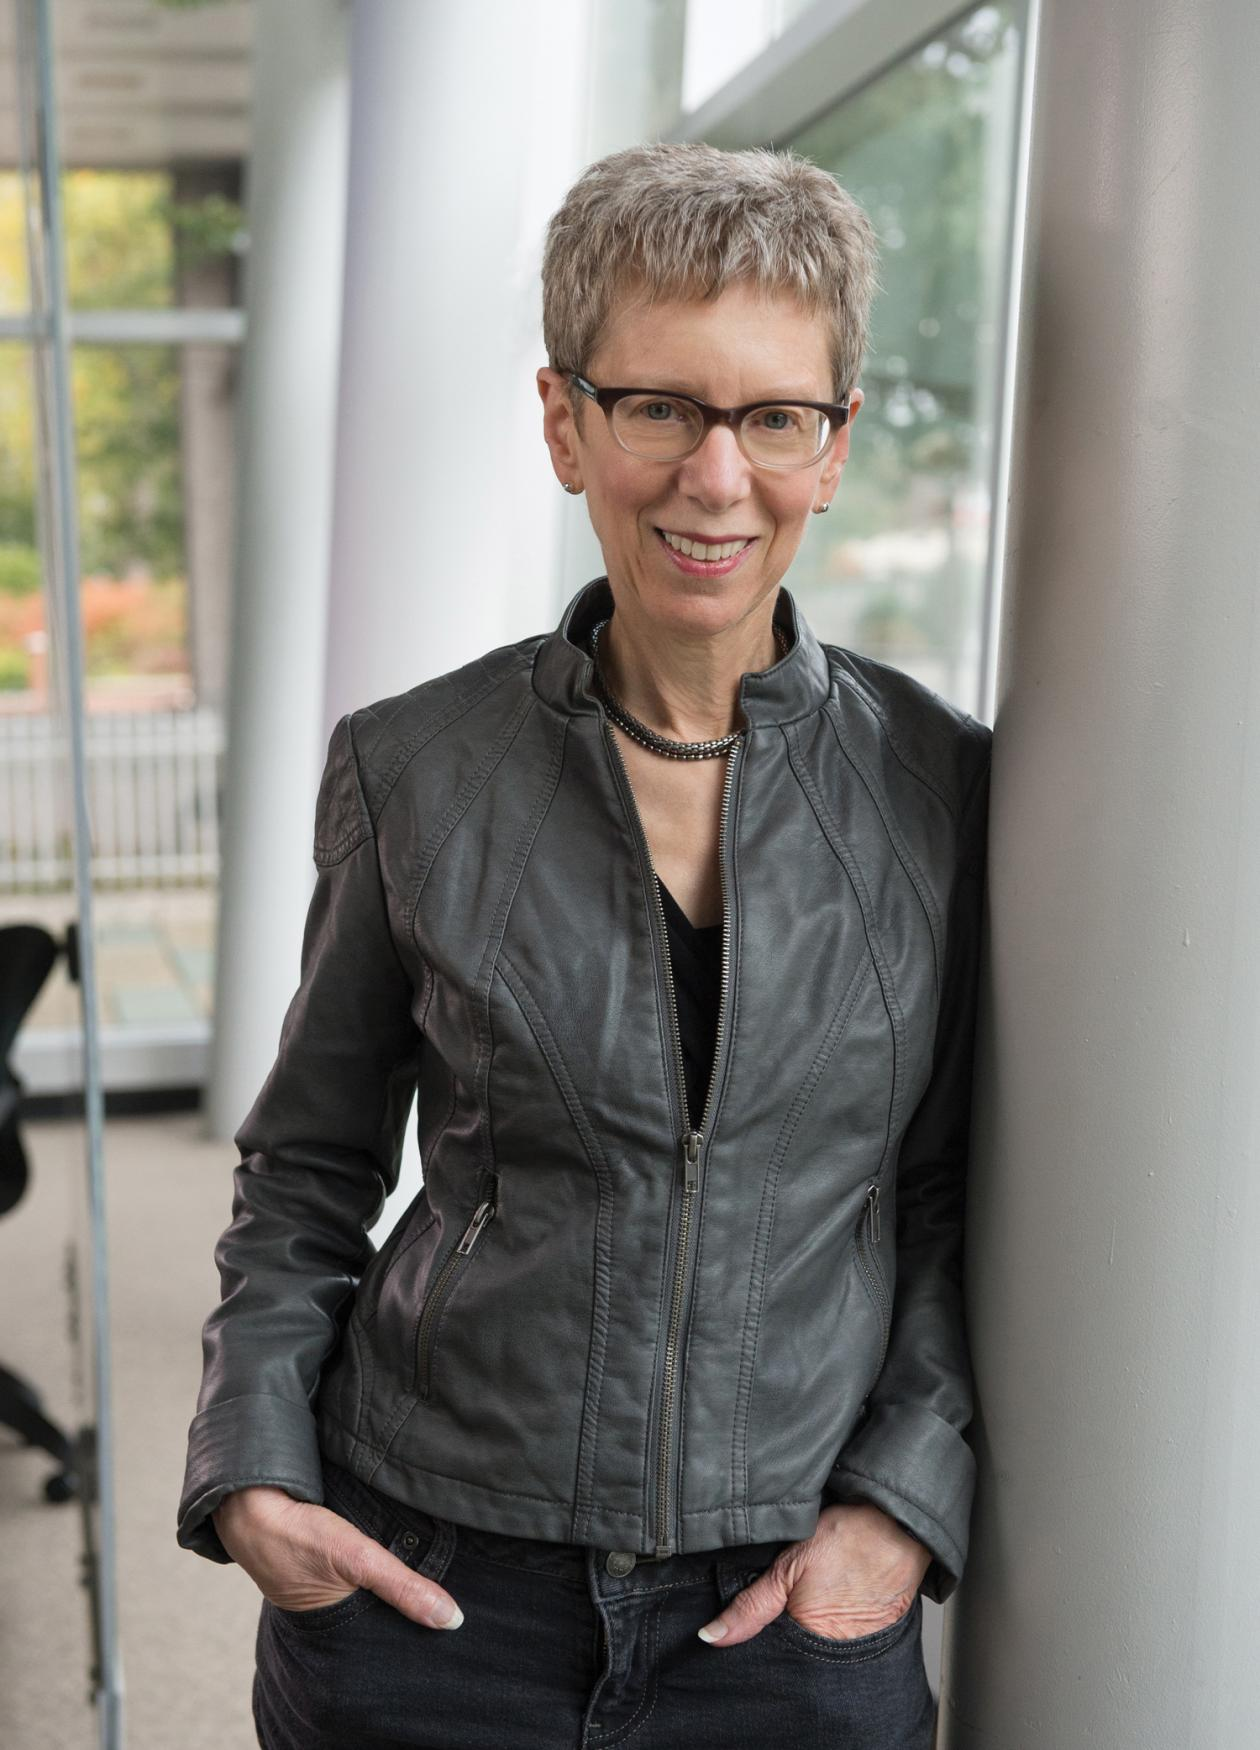 Terry Gross, standing with her hands in her pockets